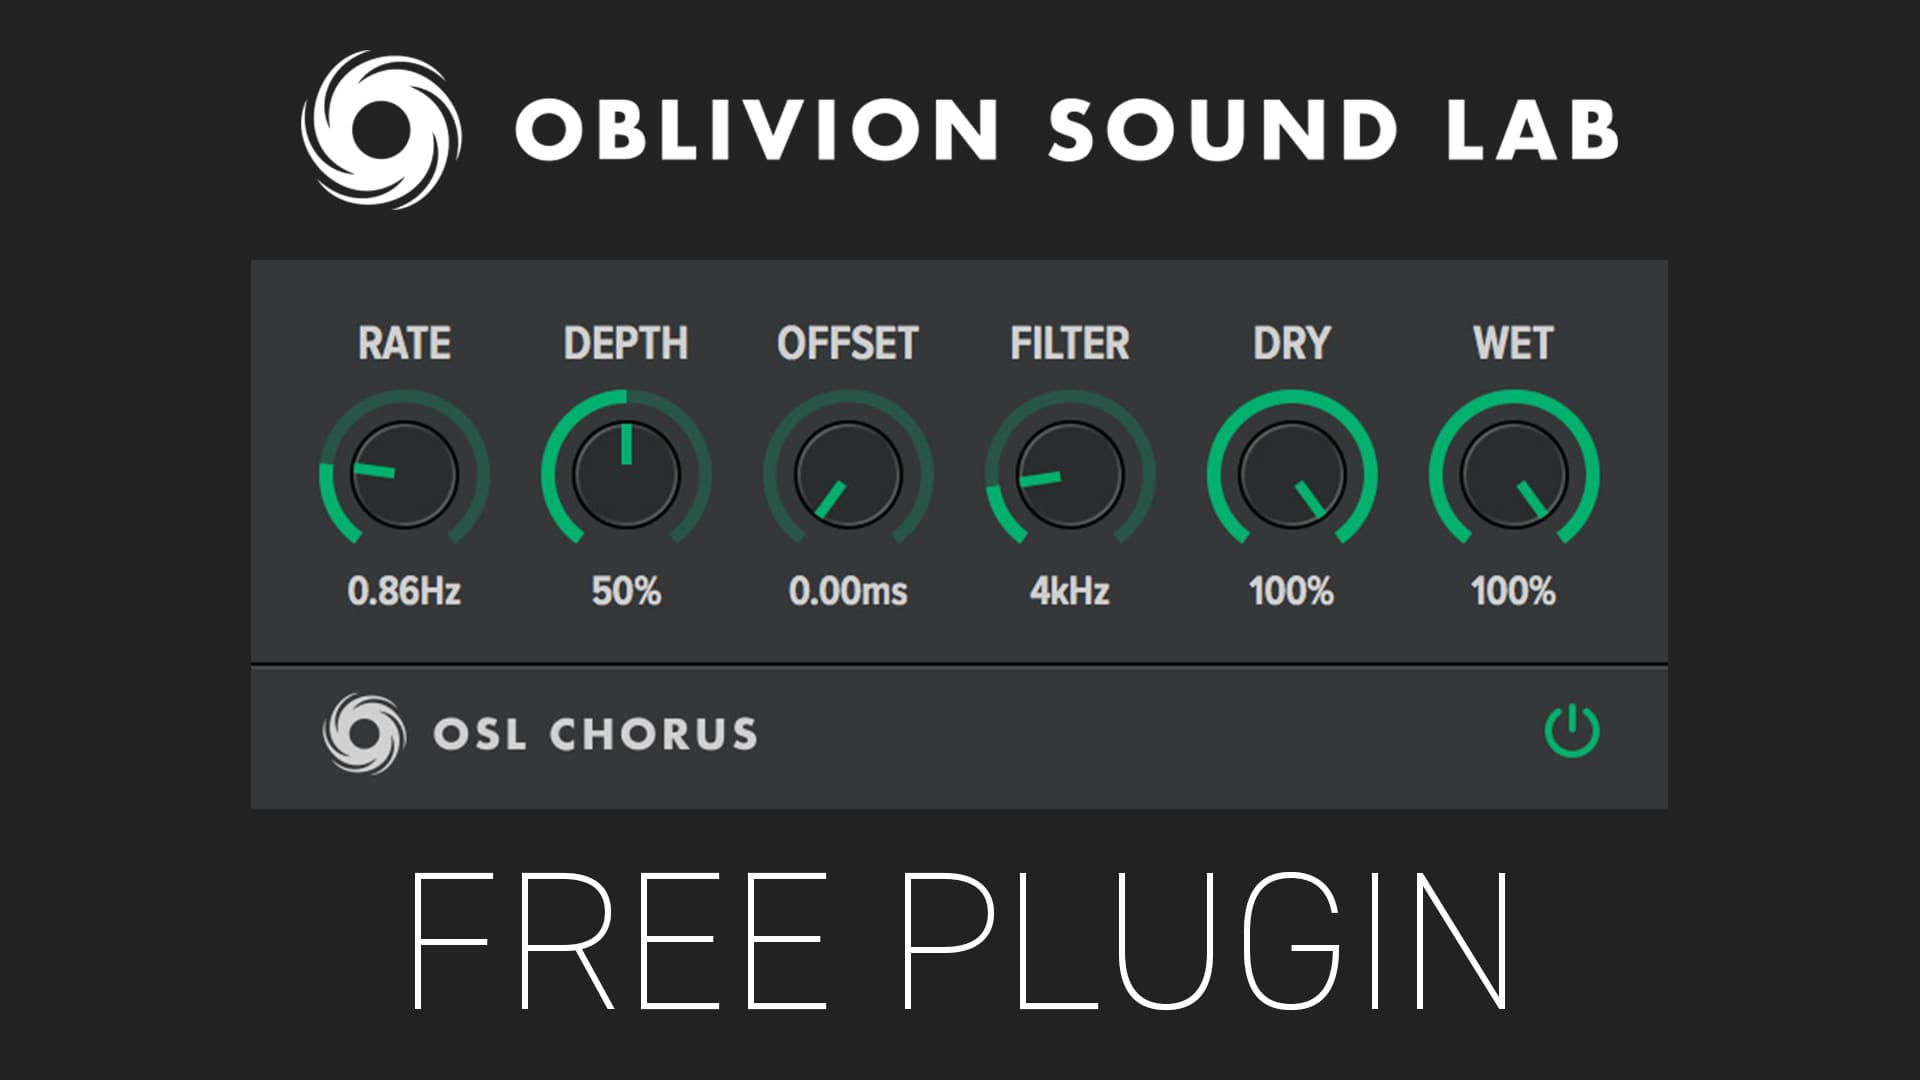 OSL Chorus by Oblivion Sound Lab Free Plugin